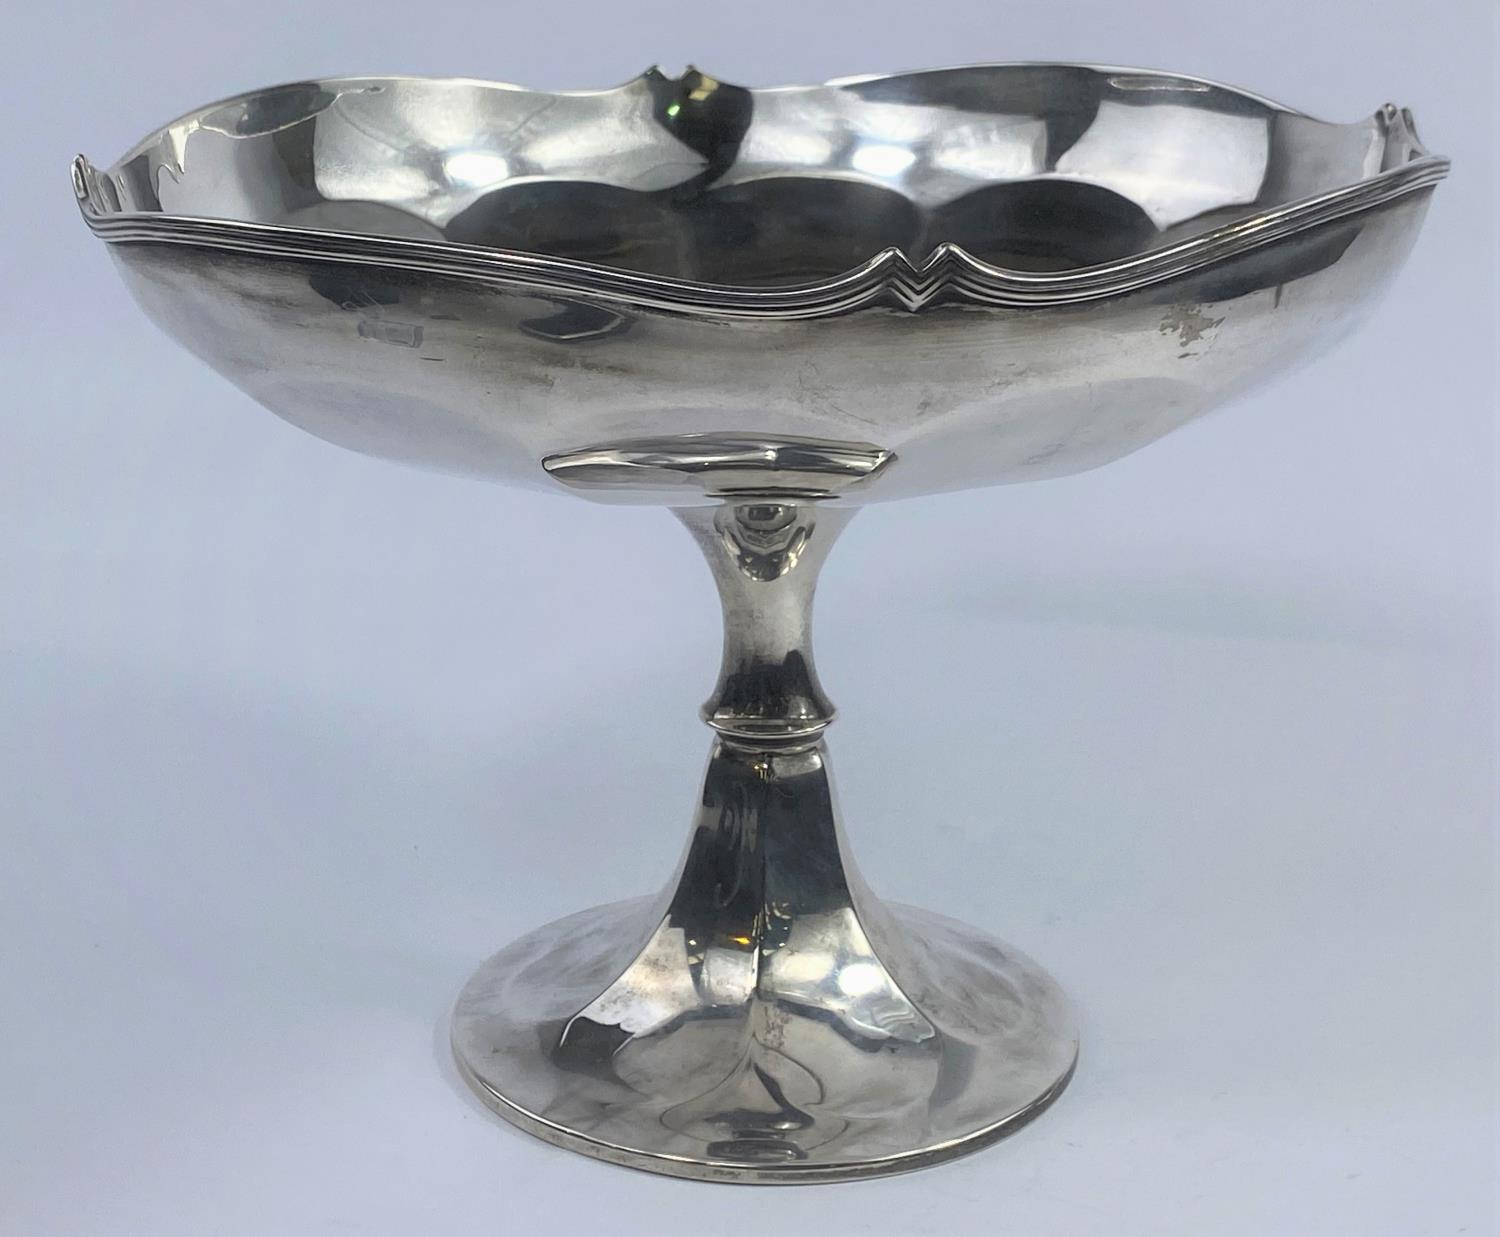 A hallmarked silver circular ribbed dish on pedestal with flared foot, Birmingham 1918, bears